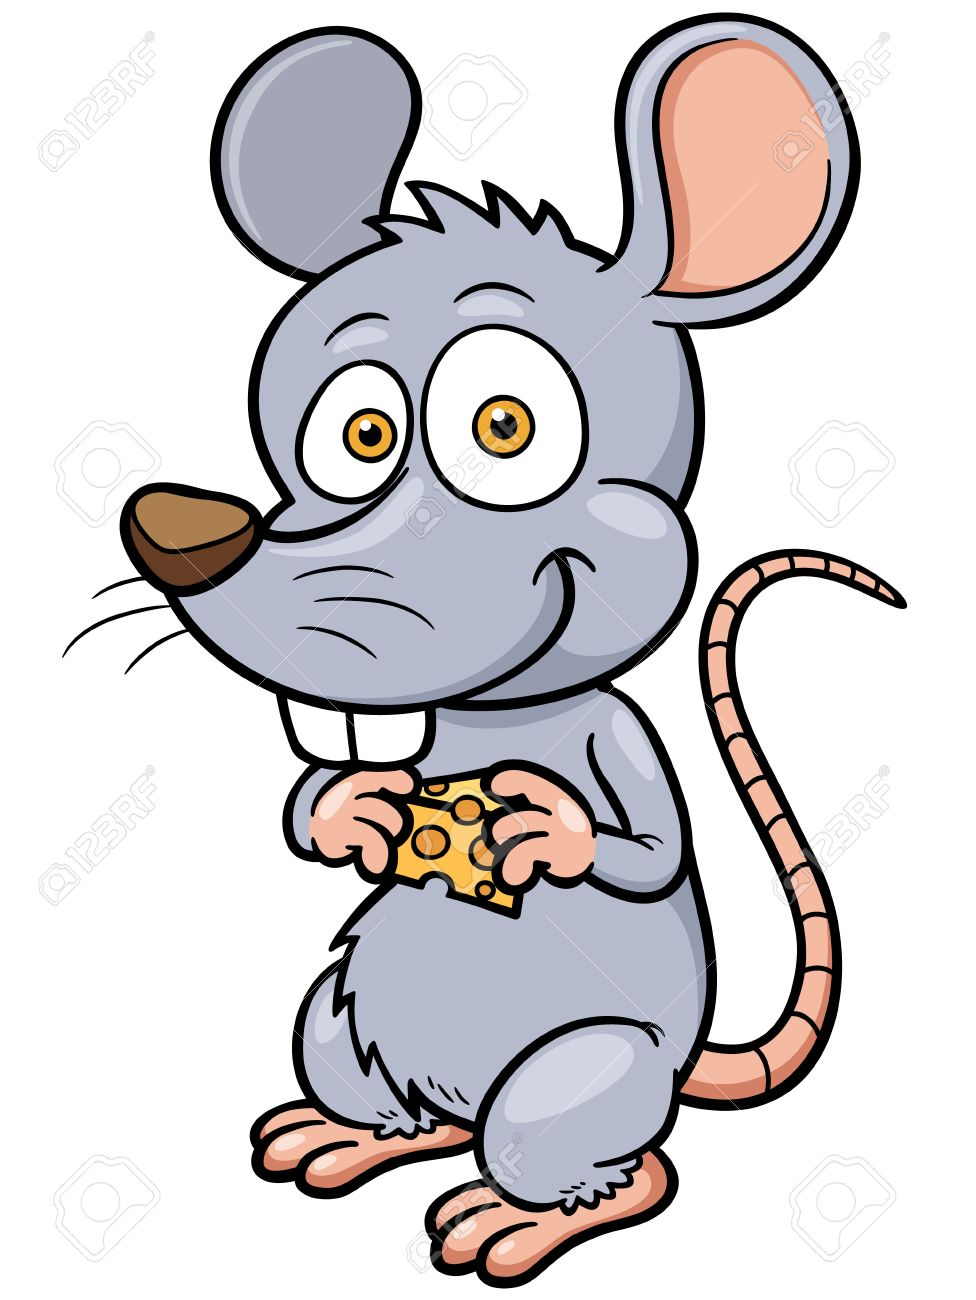 Cute rat cartoon